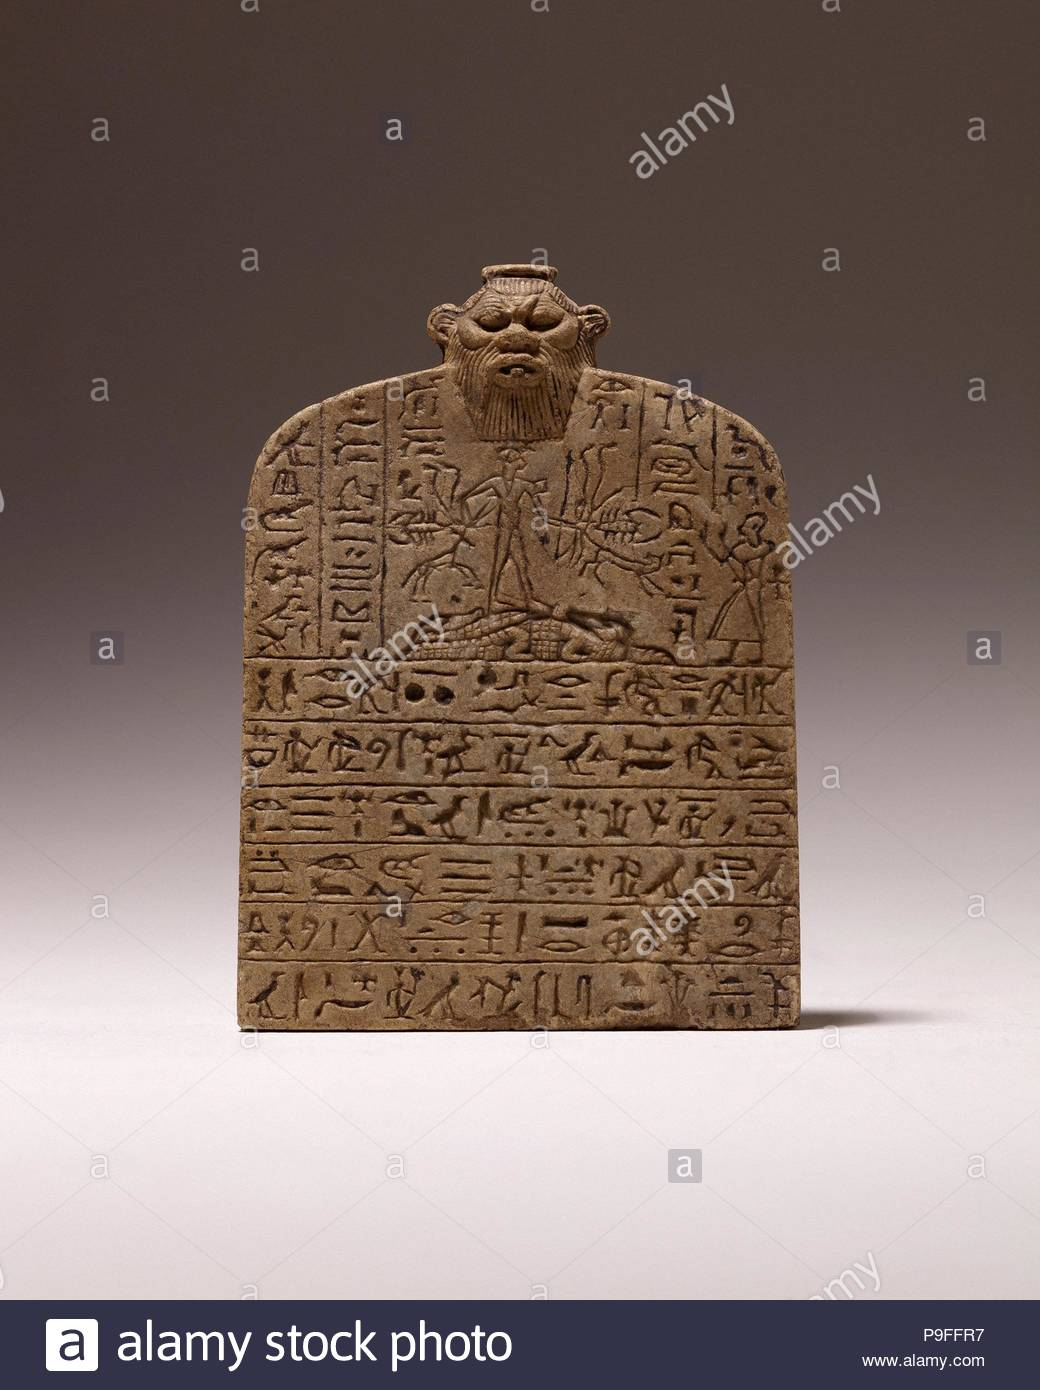 Small Magical Stela with Shed dedicated by Nesamenemopet, son of Djedkhonsuiufankh, Third Intermediate Period, Dynasty 25, ca. 750–664 B.C., Possibly from Fayum; From Egypt, Anhydrite. Stock Photo